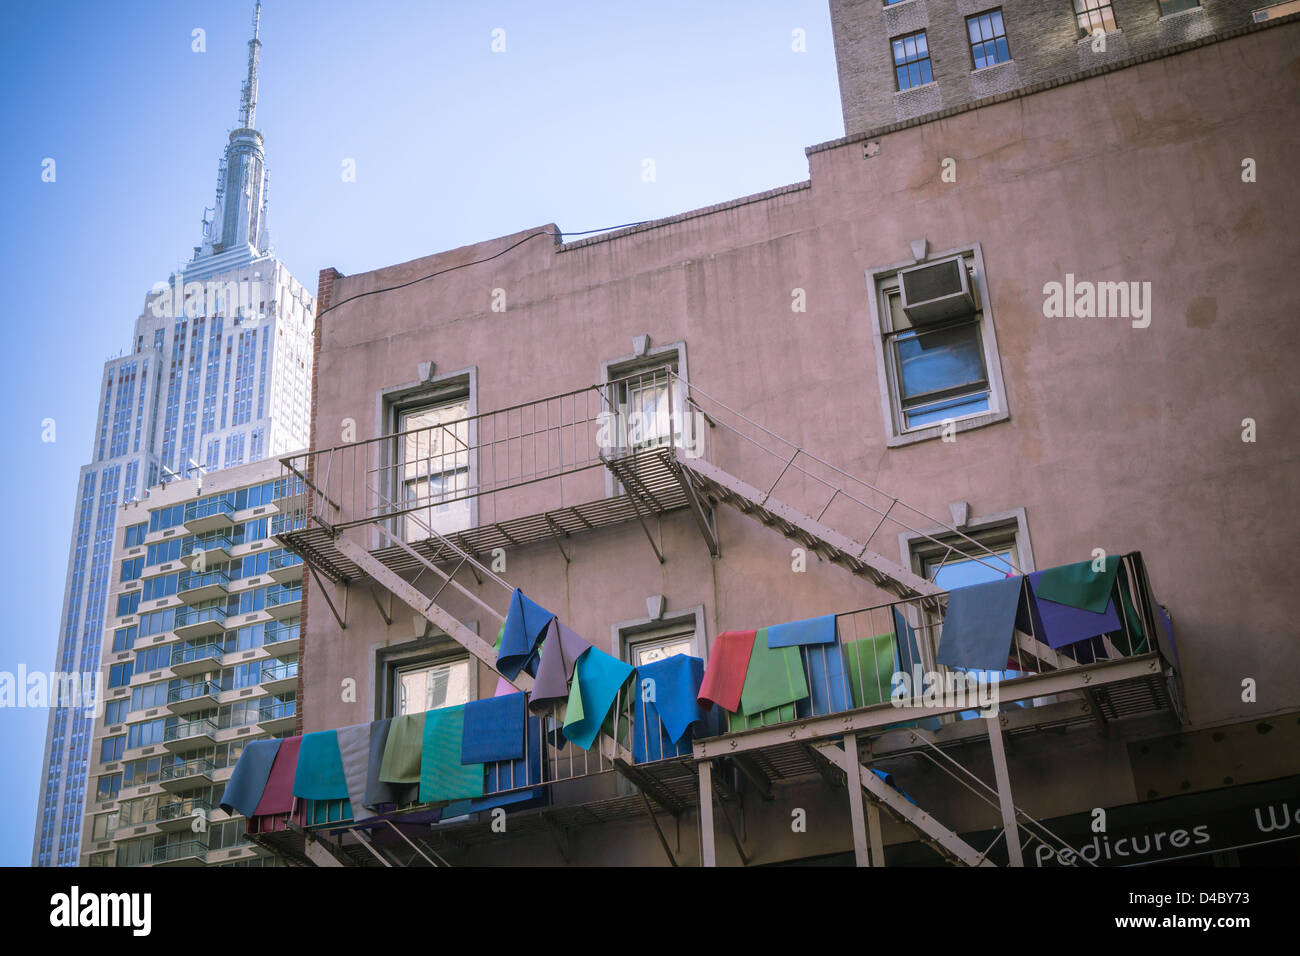 A yoga studio in Midtown Manhattan in New York airs out their yoga mats on a fire escape - Stock Image